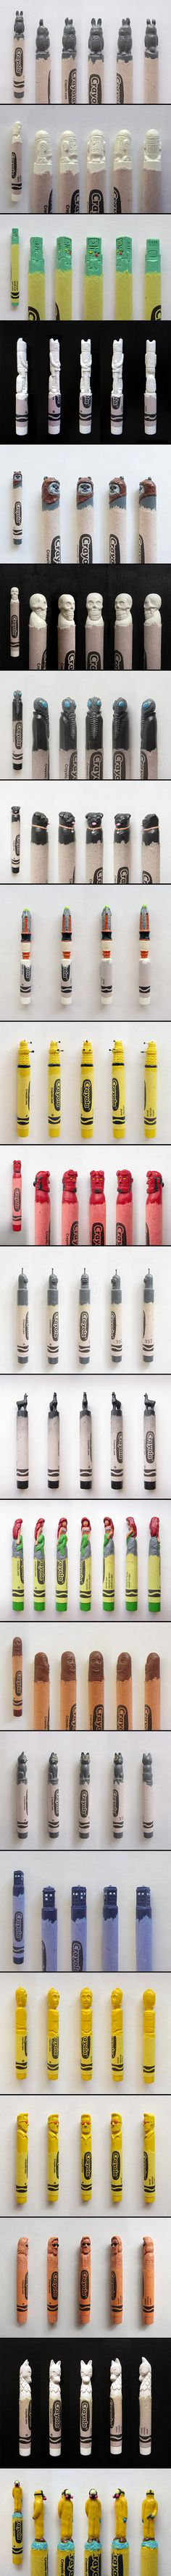 California artist Hoang Tran creates amazingly intricate crayon sculptures of characters from popular fiction like Game of Thrones, Star Wars, Miyazaki movies, Doctor Who, Adventure Time, and more.